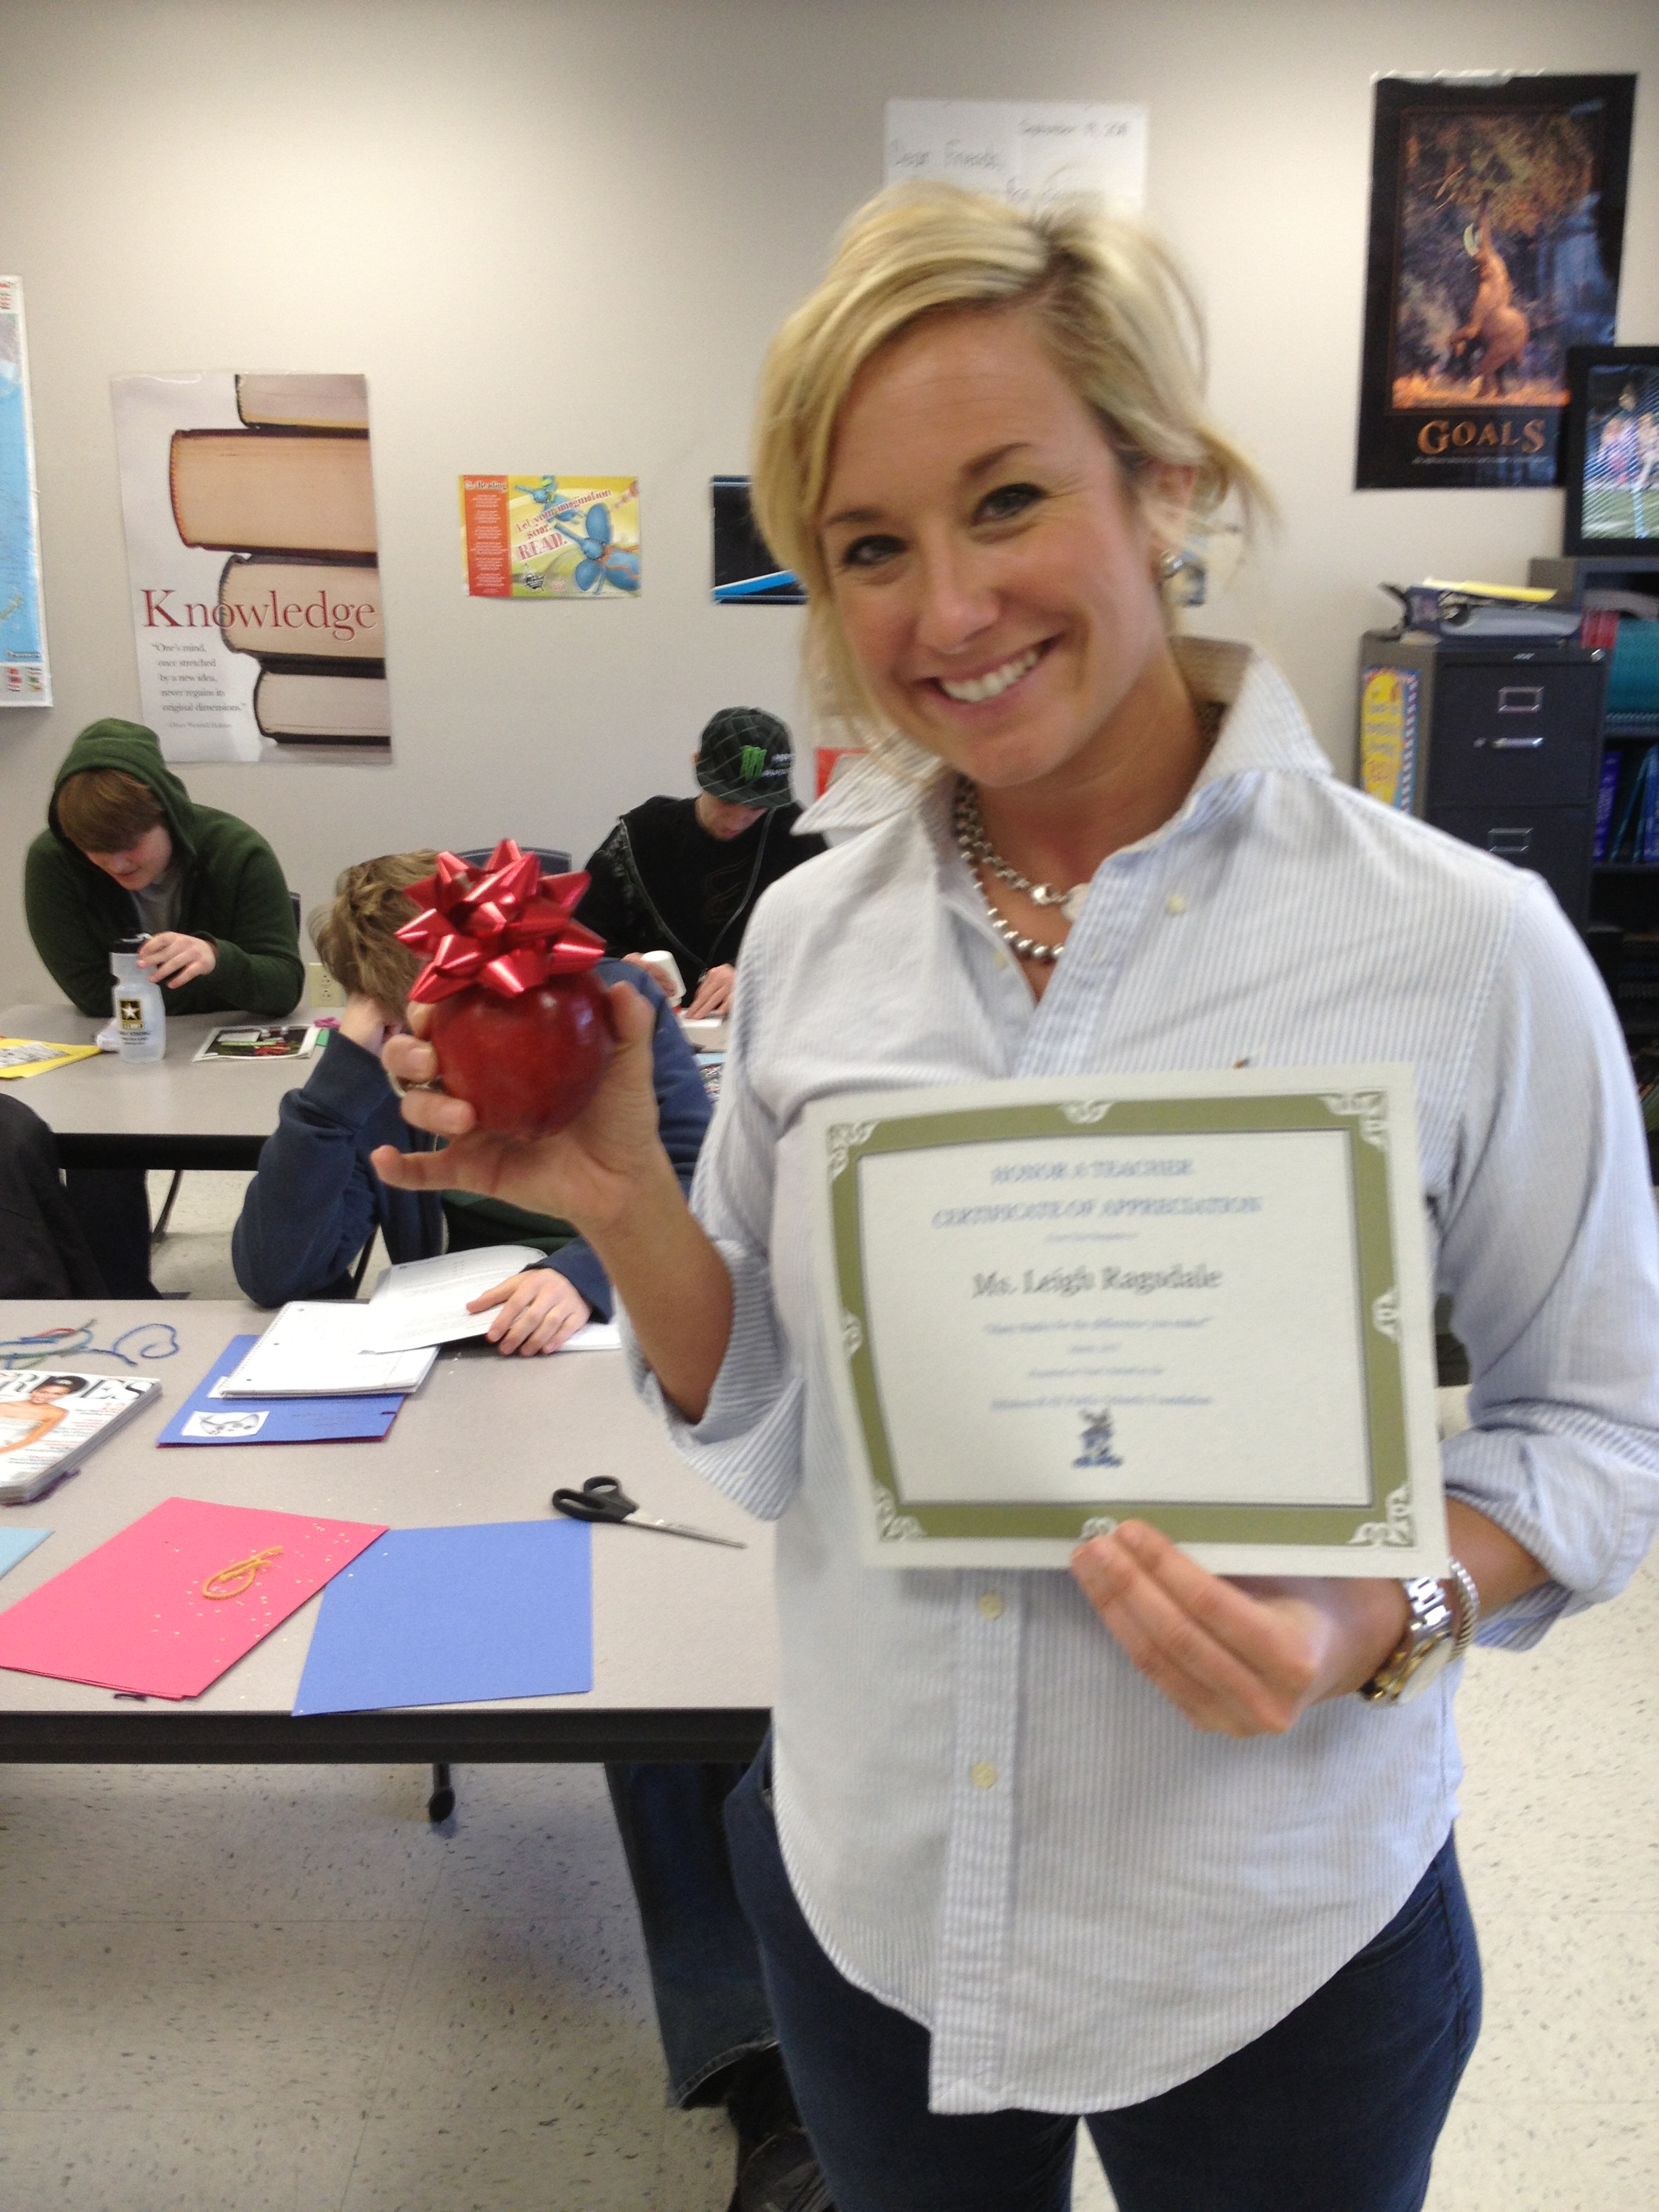 Lee Anne Ragsdale, classroom teacher